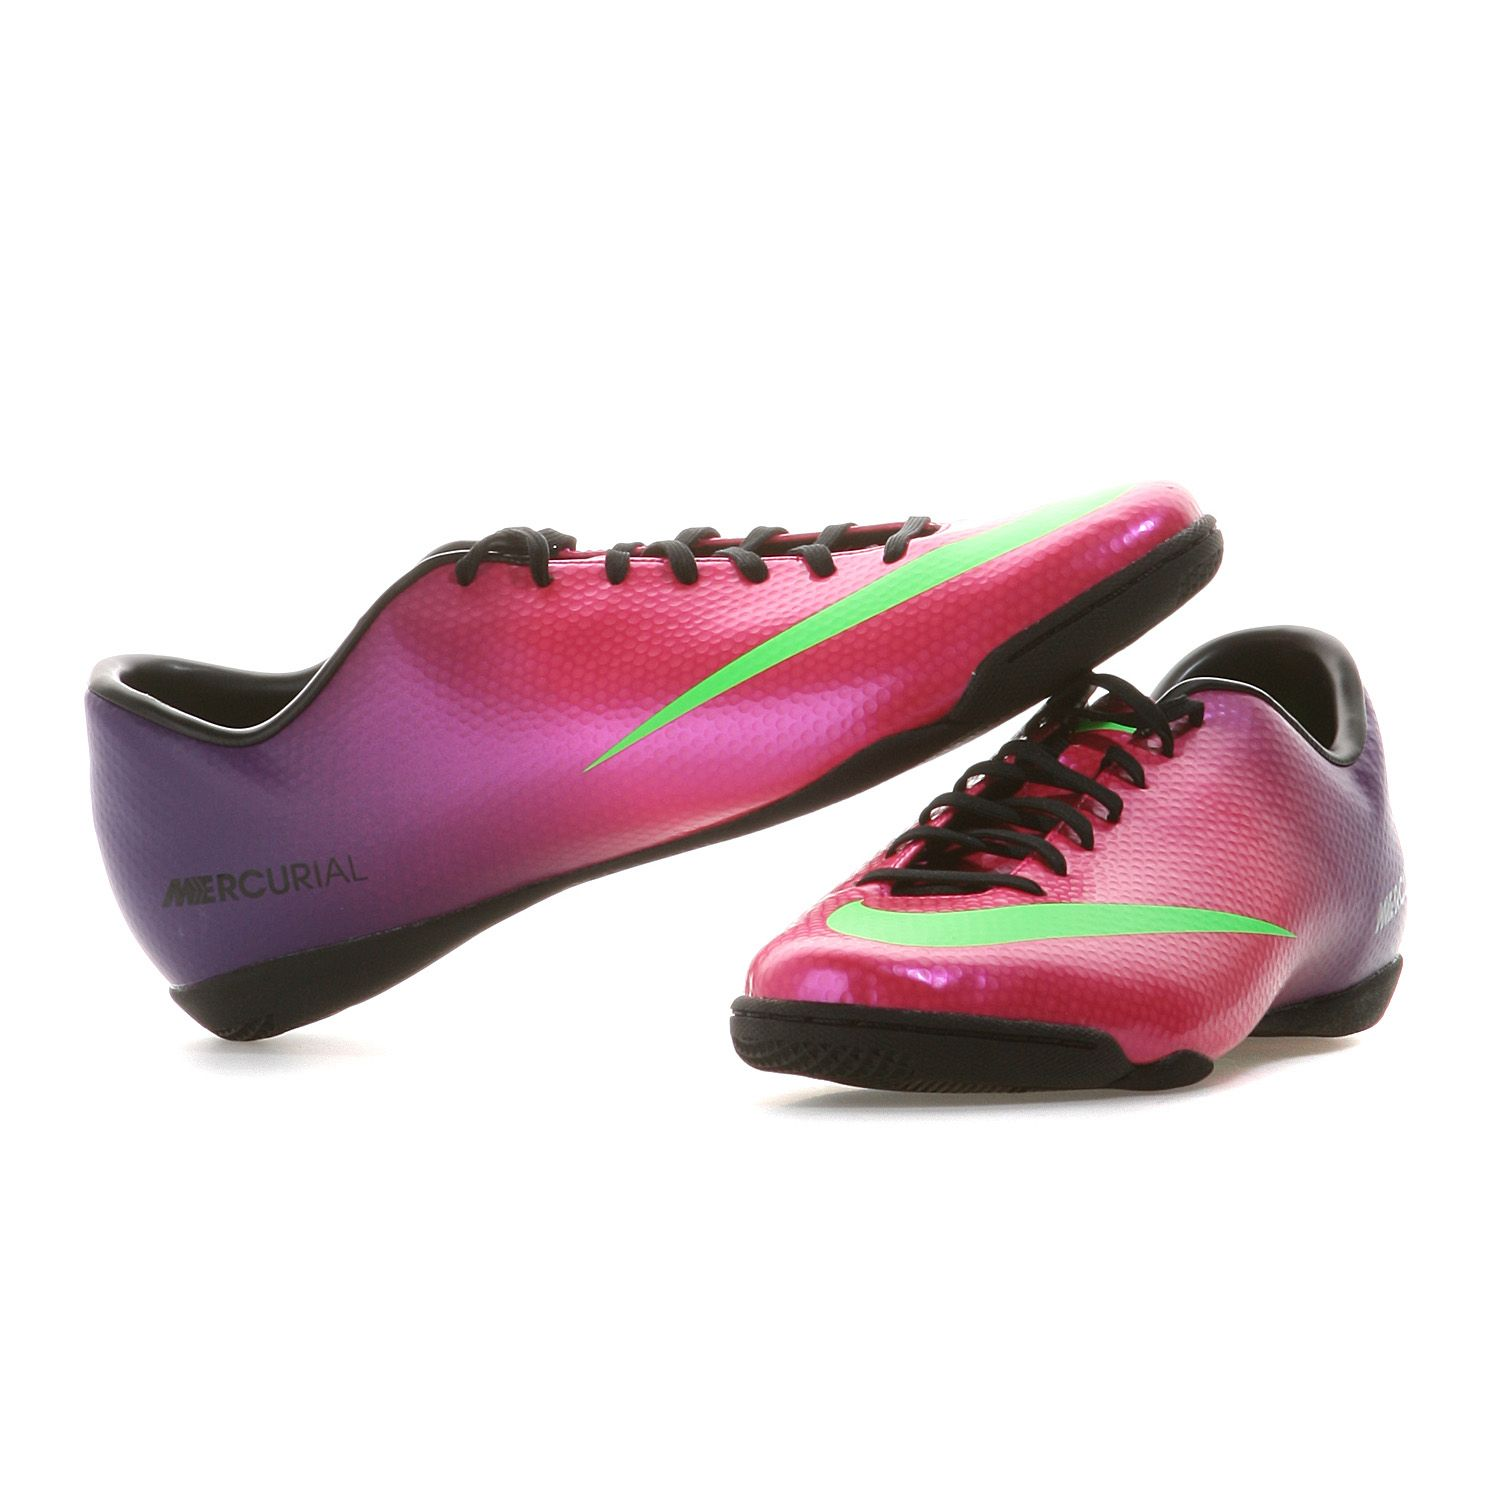 Pin By Amanda Doerr On Just Do It Soccer Cleats Cleats Nike